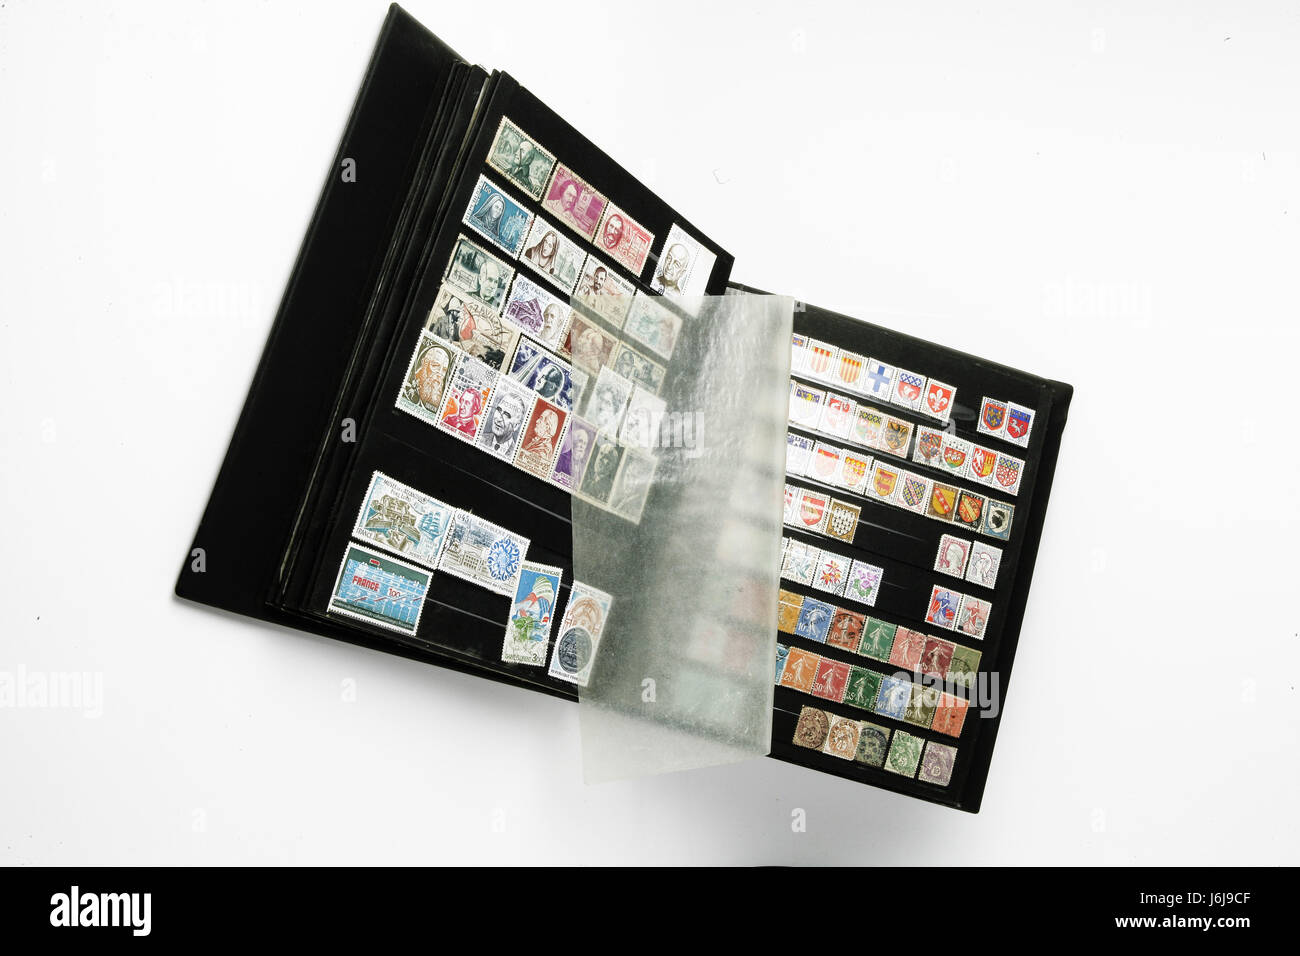 object,horizontal,stamp album,collectibles,white background - Stock Image